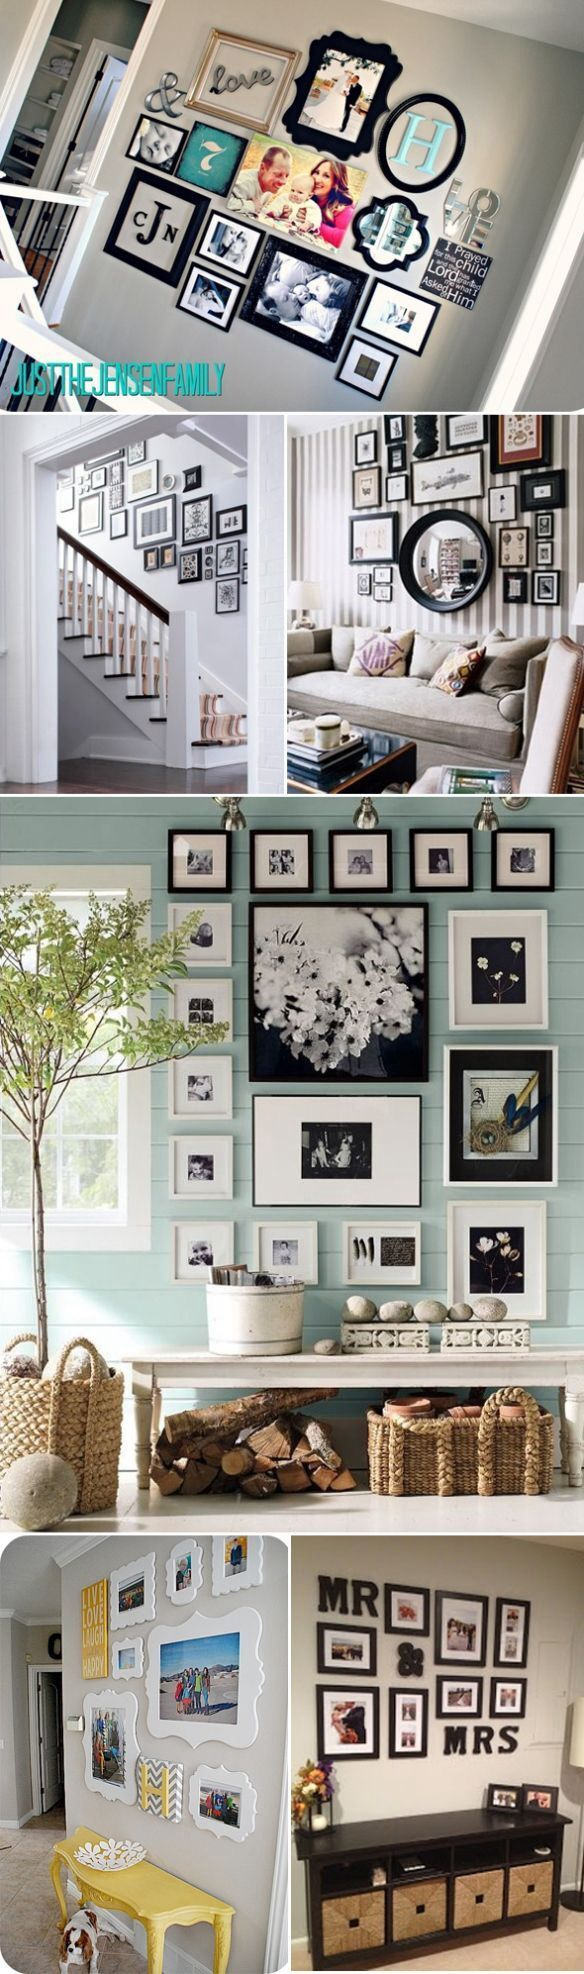 Deluxe wall gallery frame - 17 Best Ideas About Wedding Picture Walls On Pinterest Canvas Wedding Pictures Picture Walls And Displaying Wedding Photos